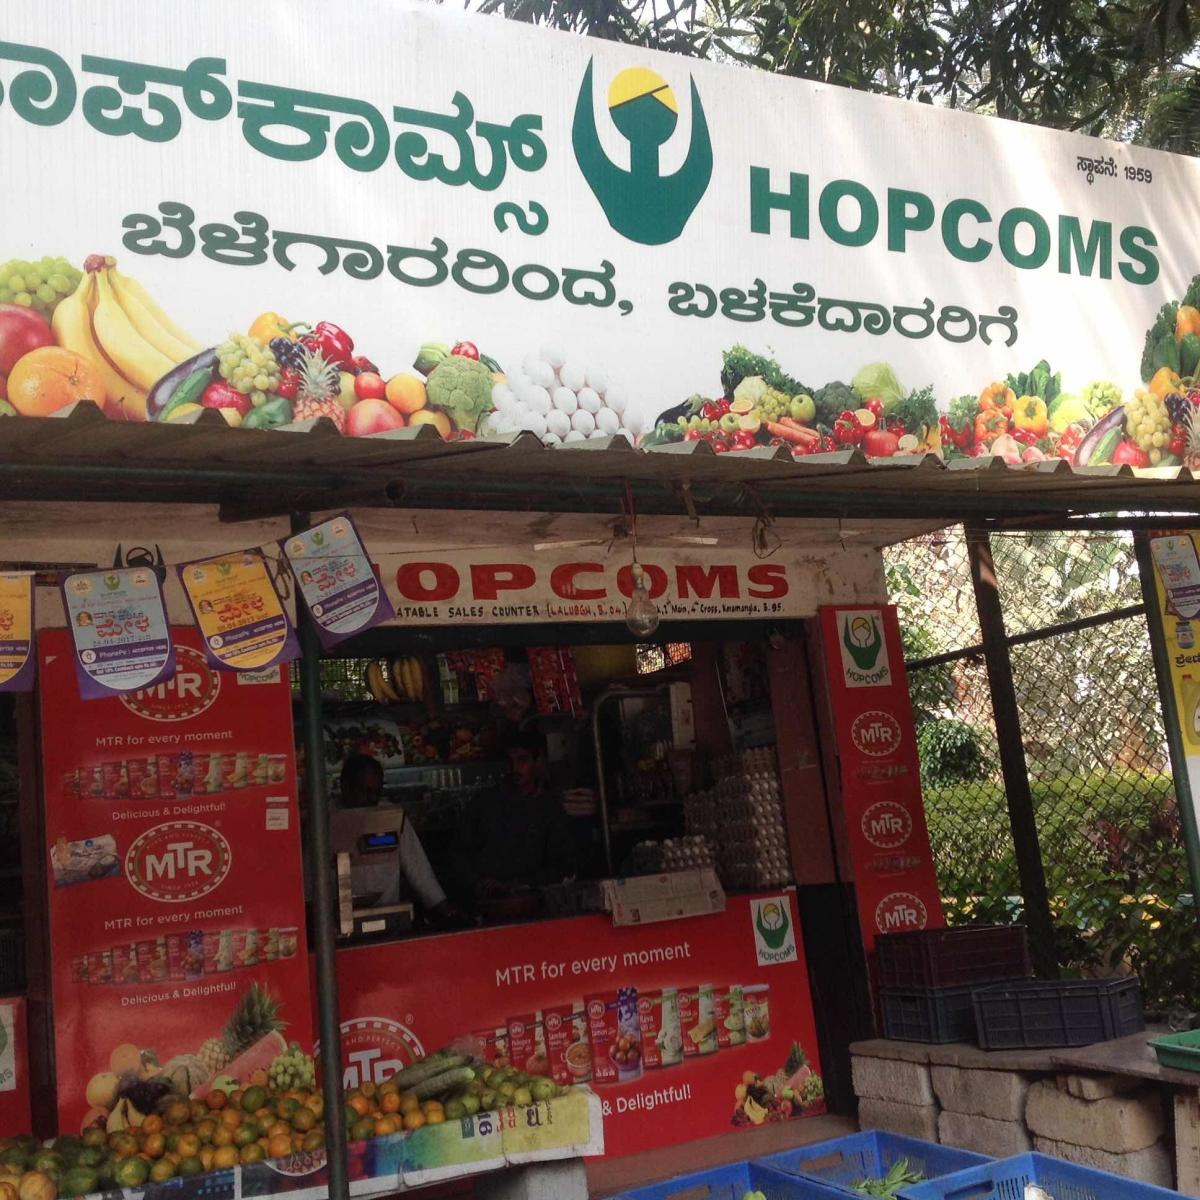 Hopcoms outlets to be revamped after 10 years